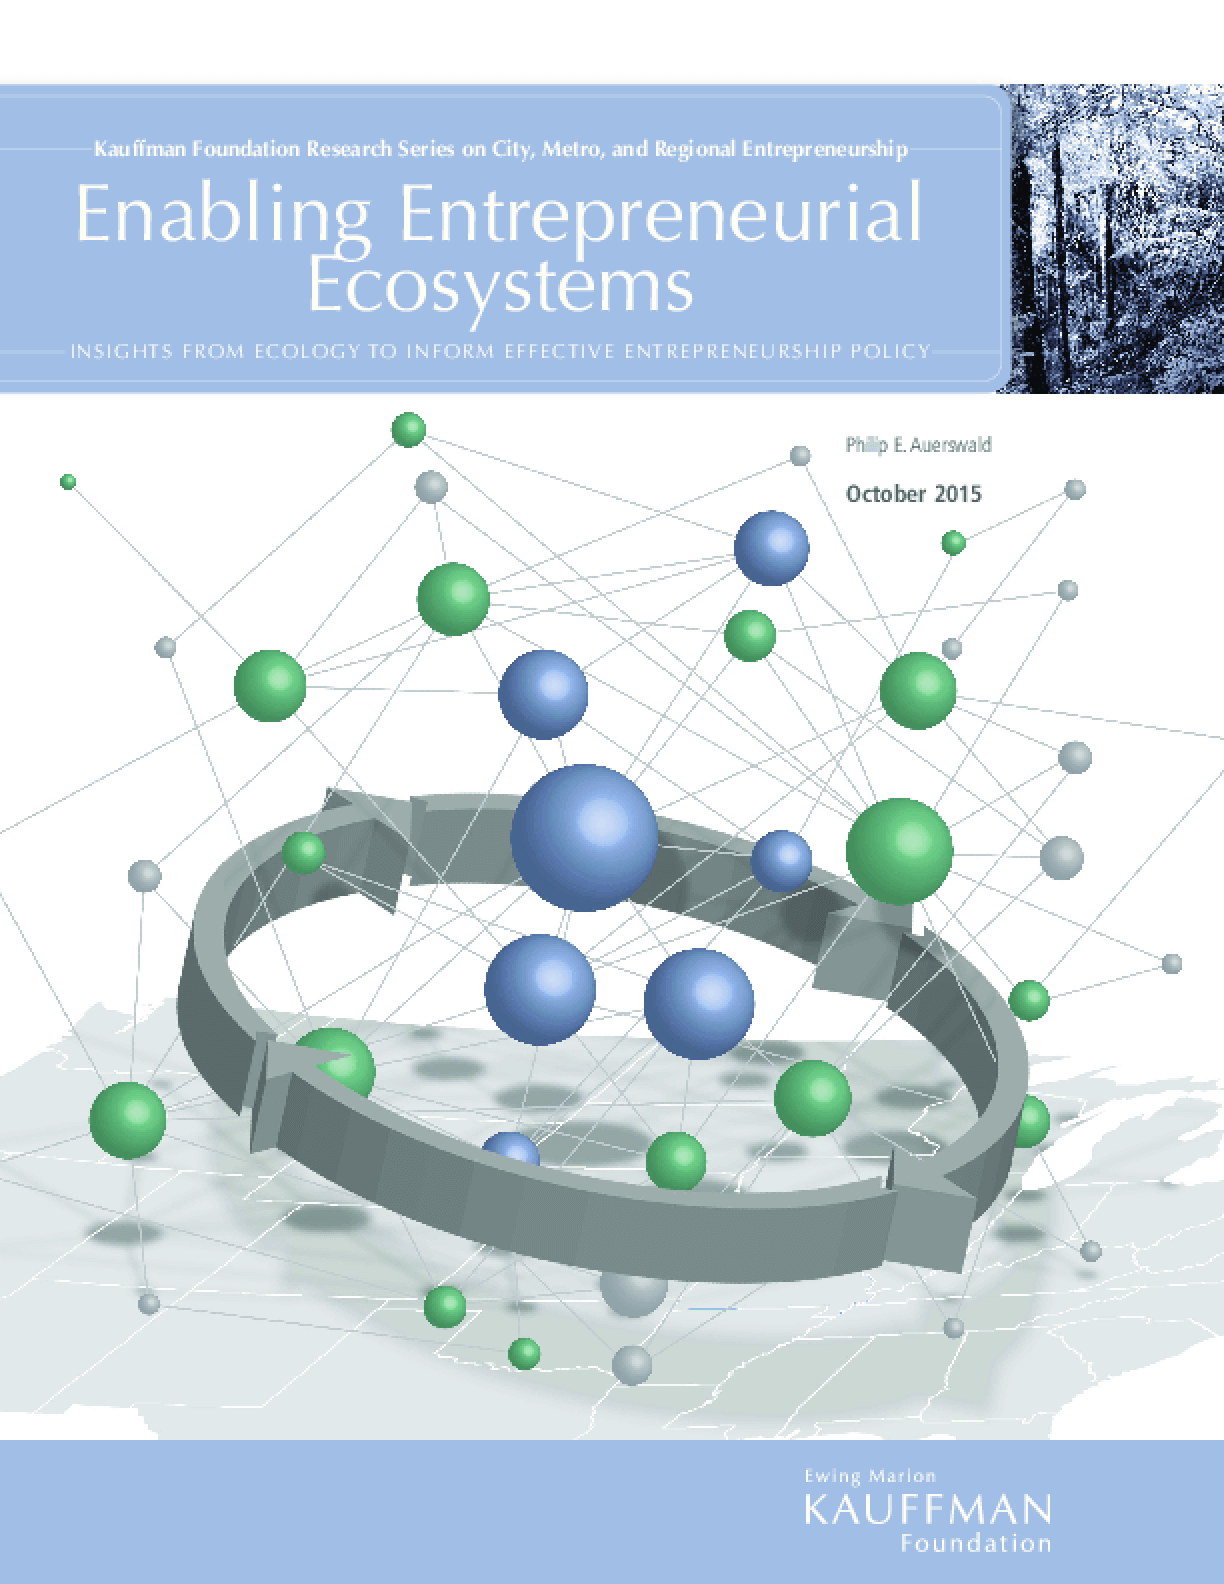 Enabling Entrepreneurial Ecosystems